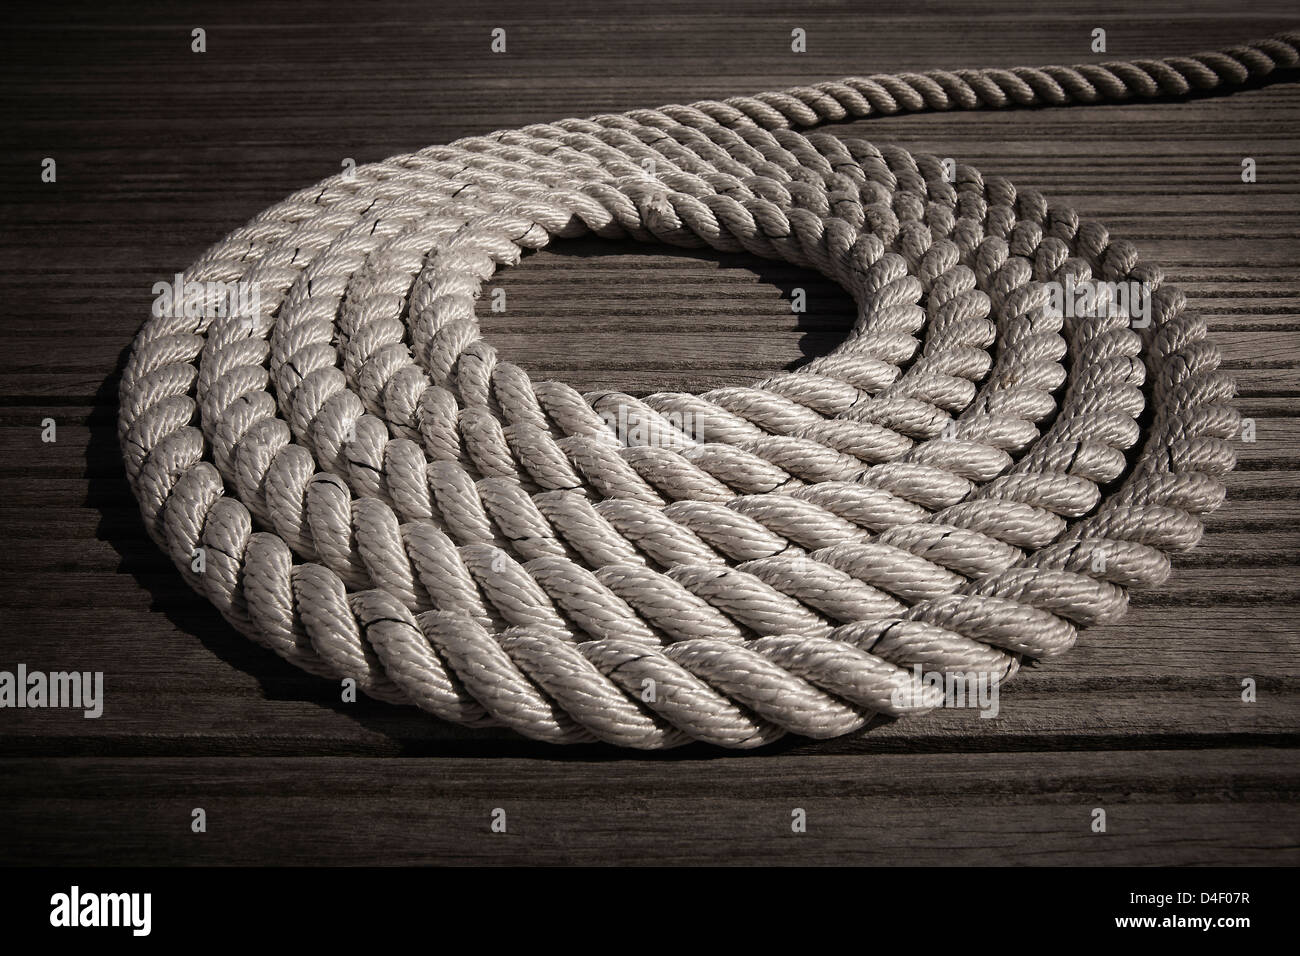 Rope coiled in circle on boardwalk - Stock Image